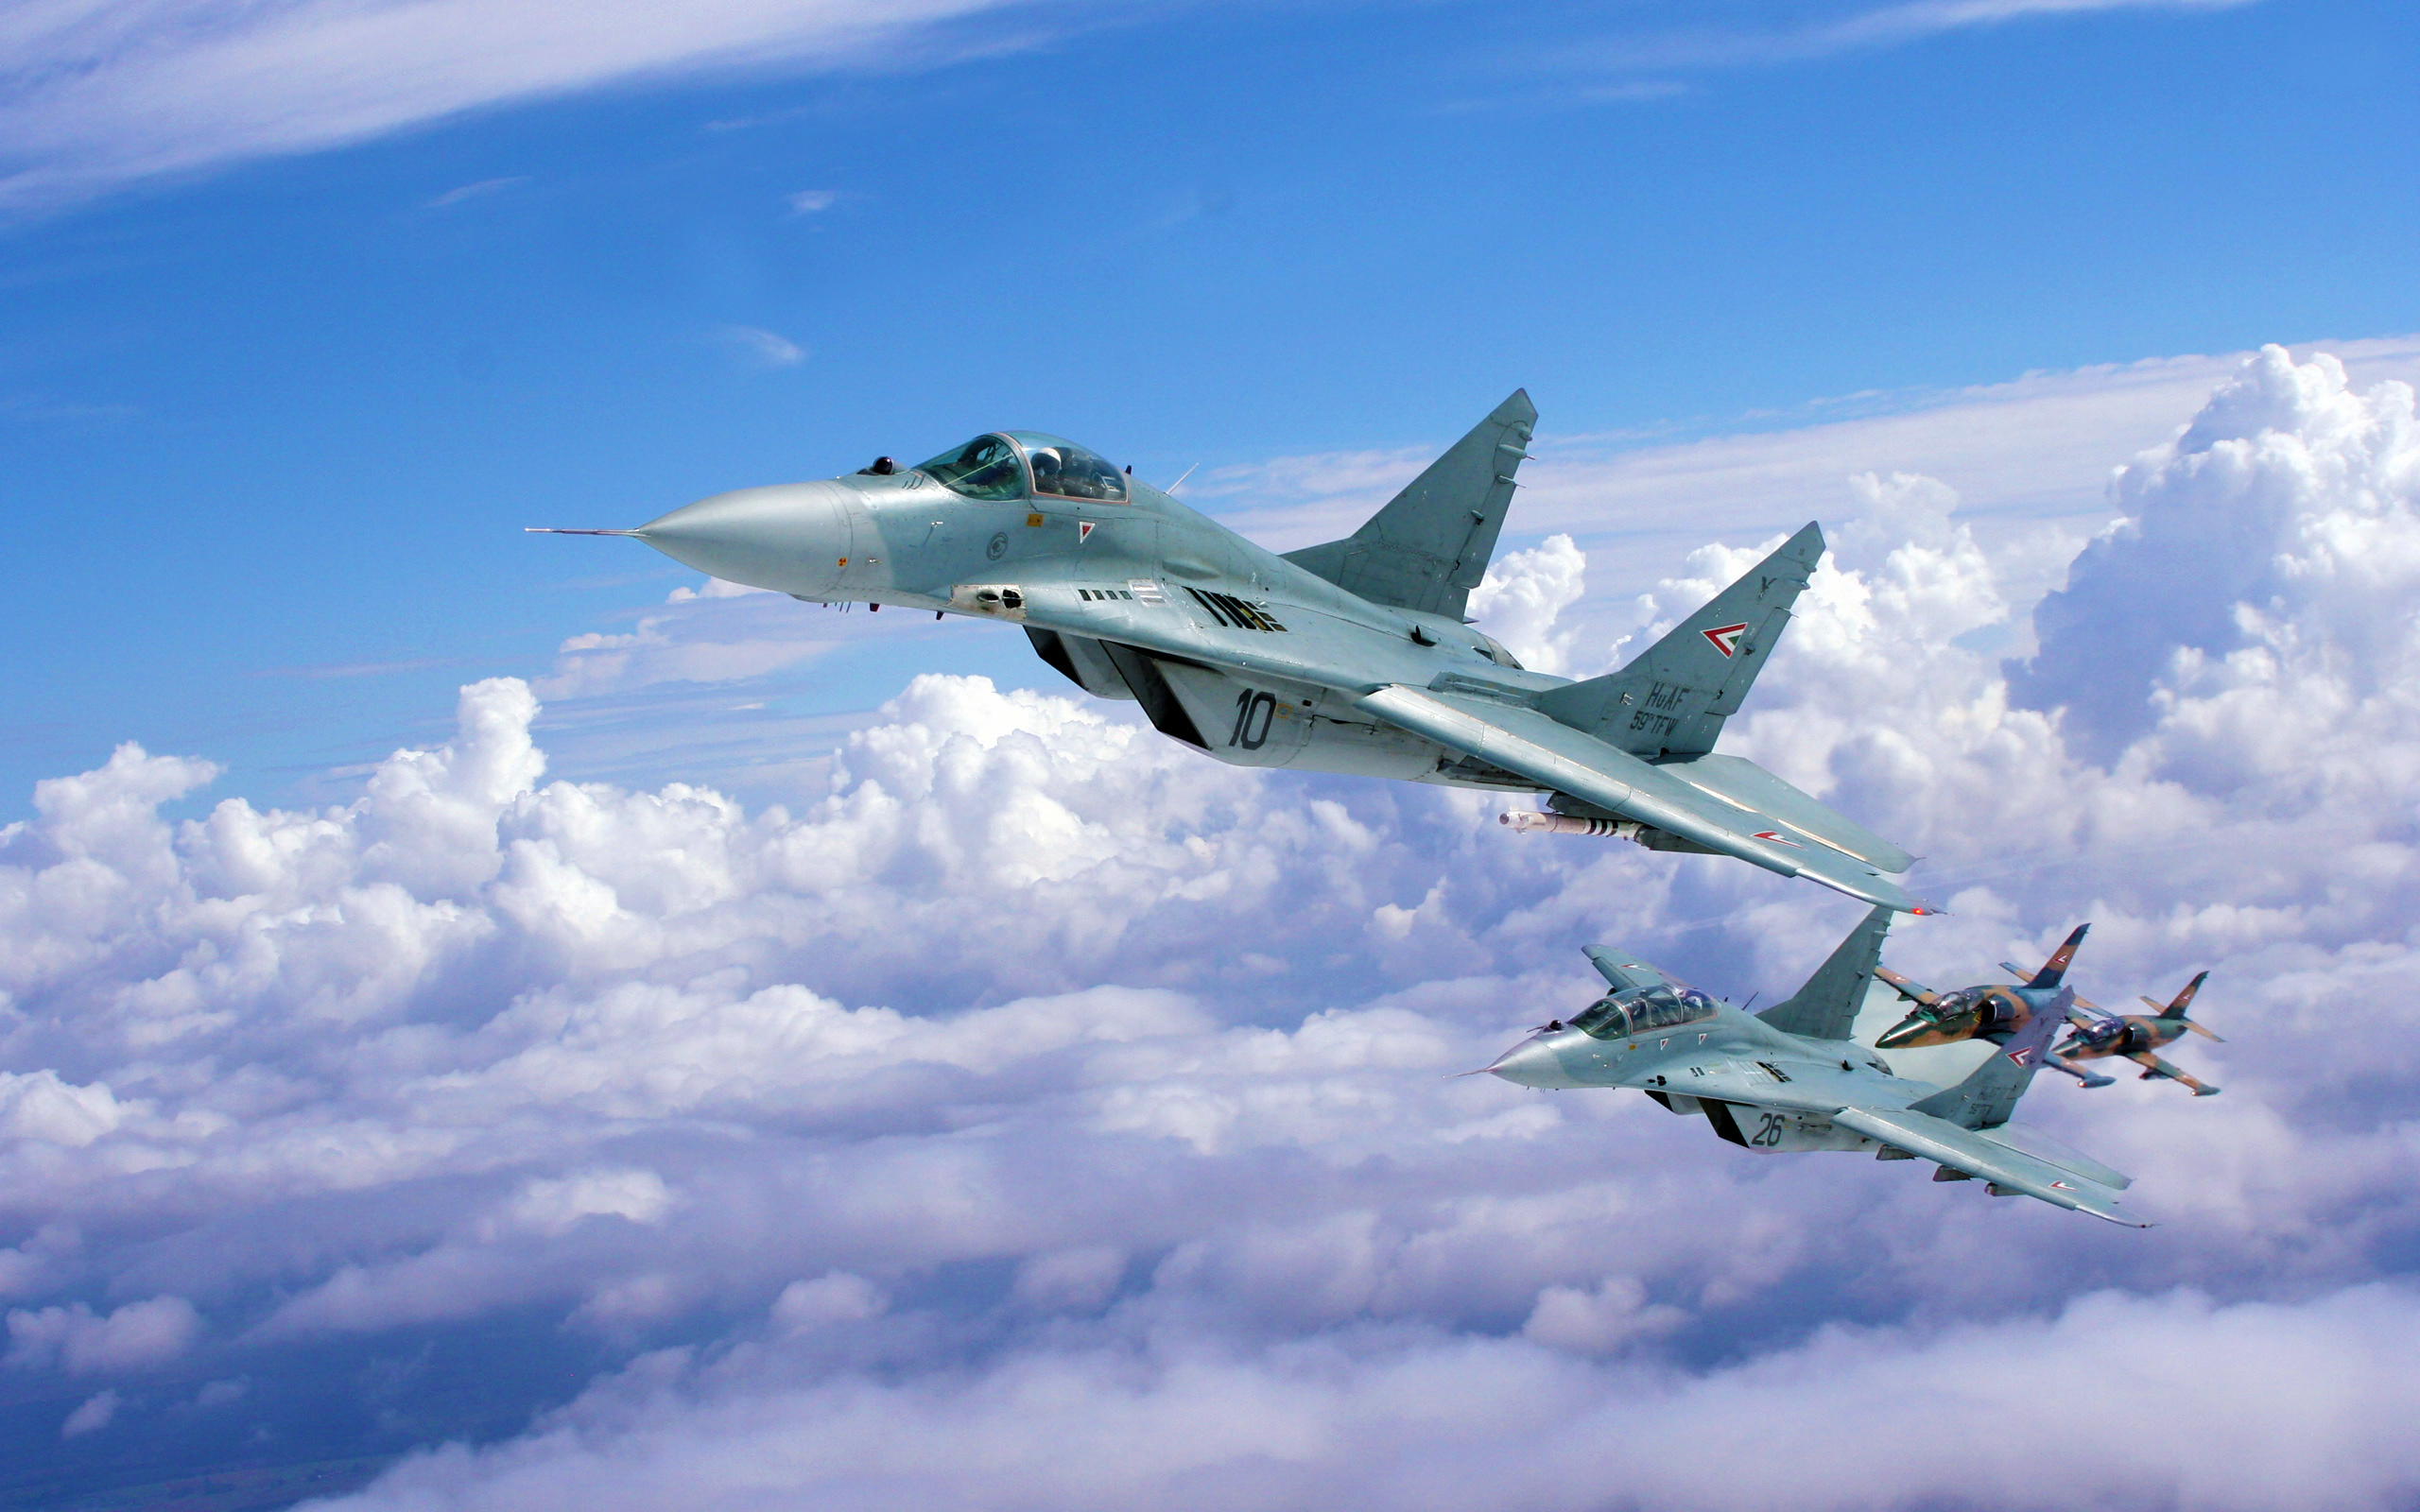 Hungarian Air Force MiG-29s by uflinks2 on DeviantArt